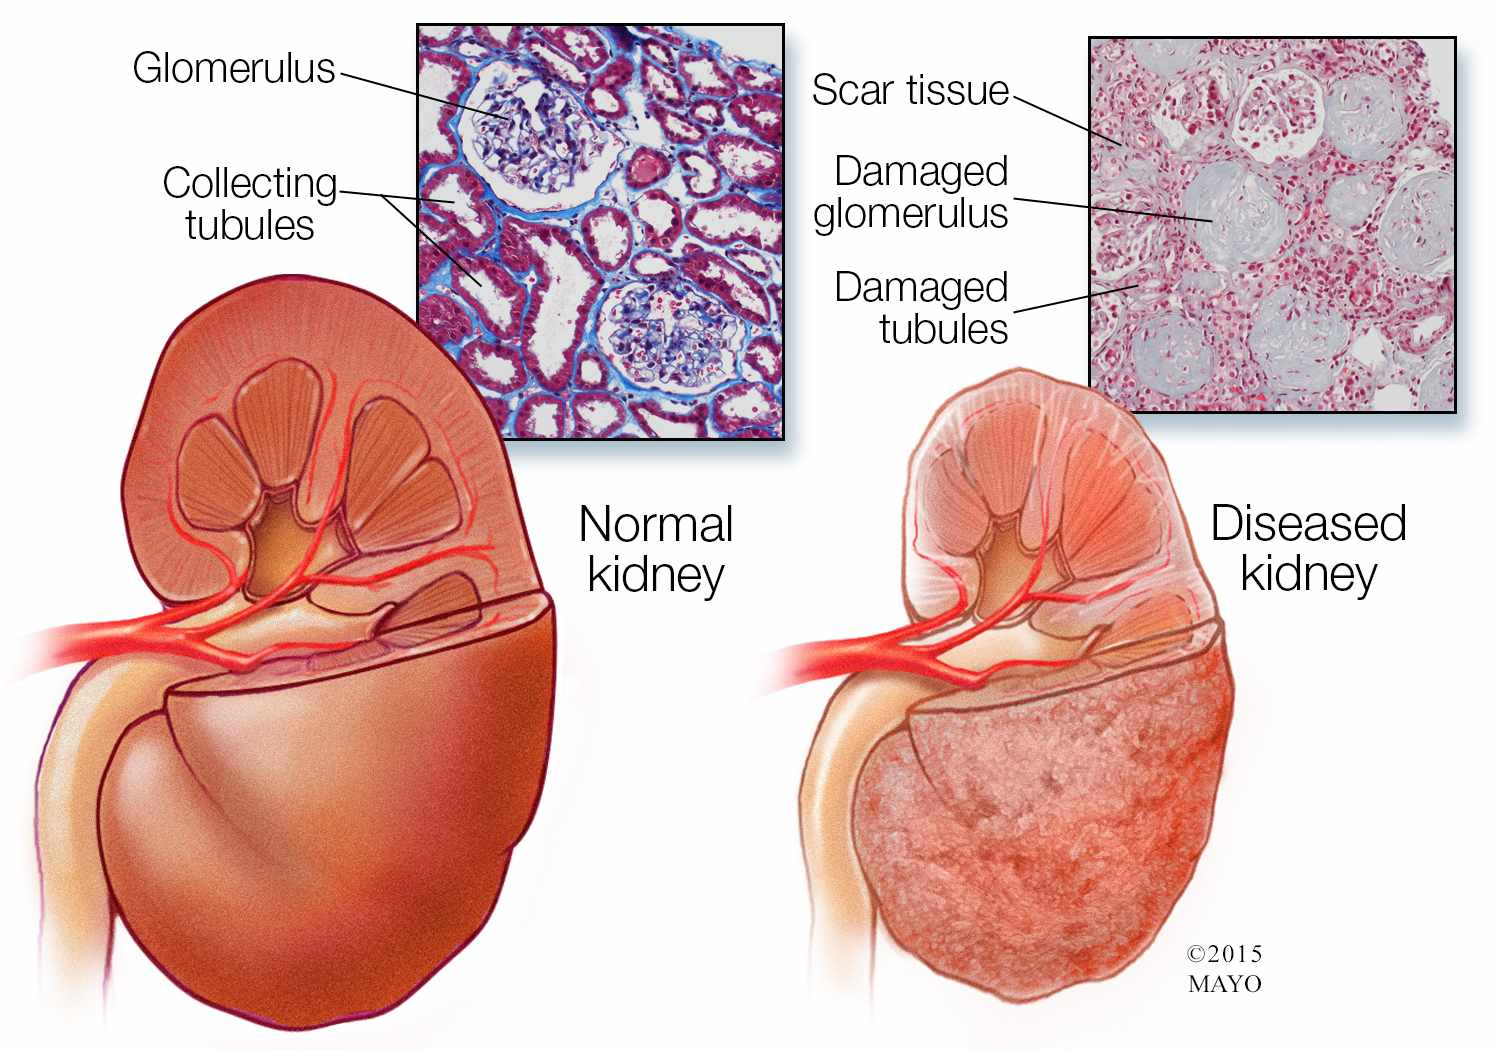 Mayo Clinic Leads Global Effort To Standardize Diagnosis Of Kidney